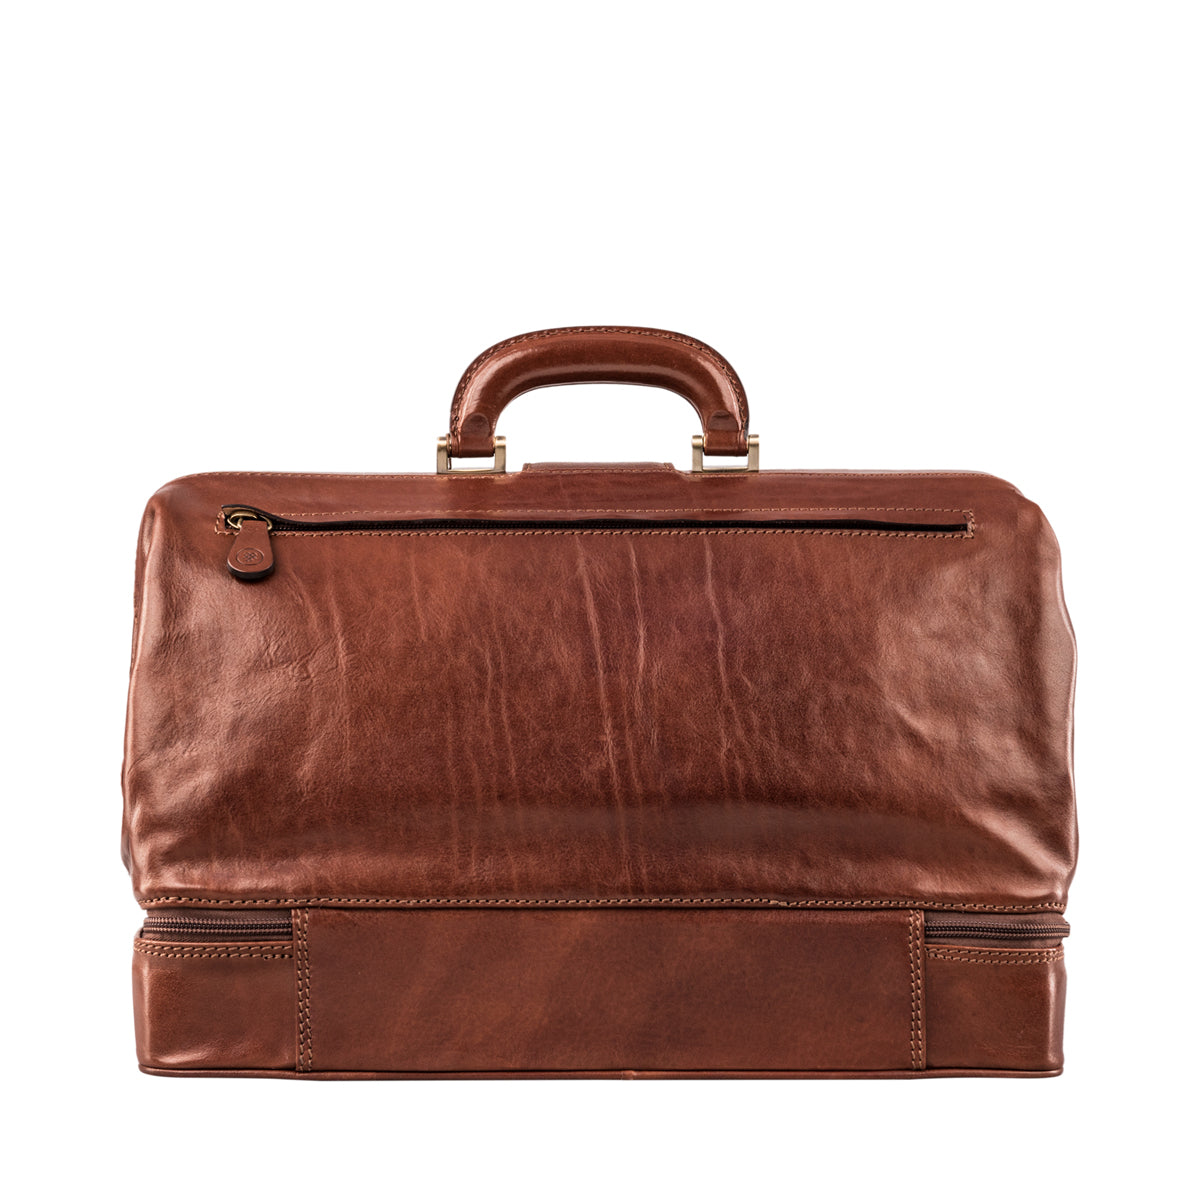 Image 4 of the Large ''Donnini' Chestnut Veg-Tanned Leather Doctor's Bag